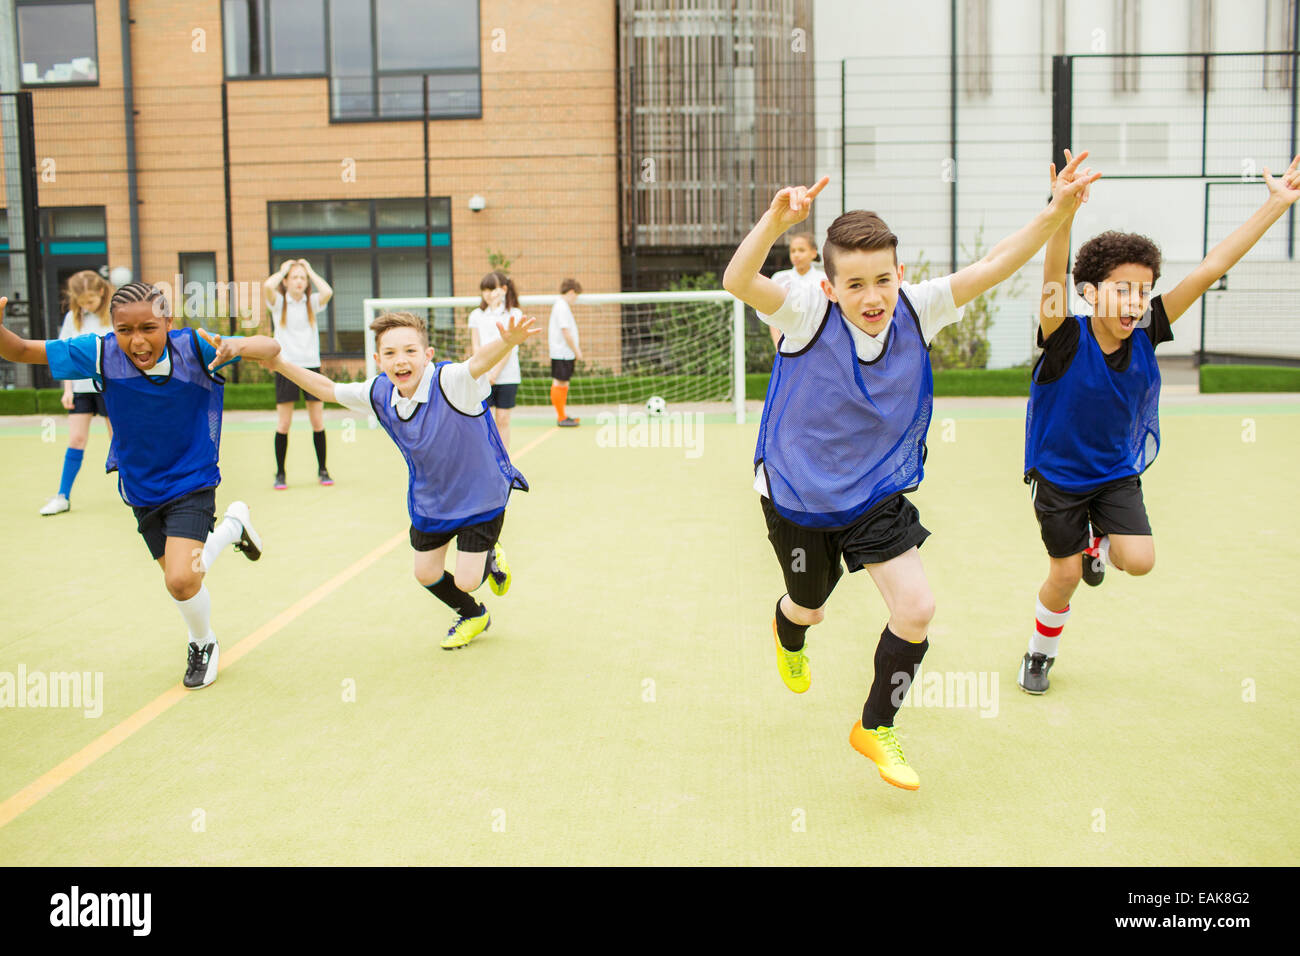 Schoolboys wearing sport uniforms running with arms raised in soccer field in front of school - Stock Image